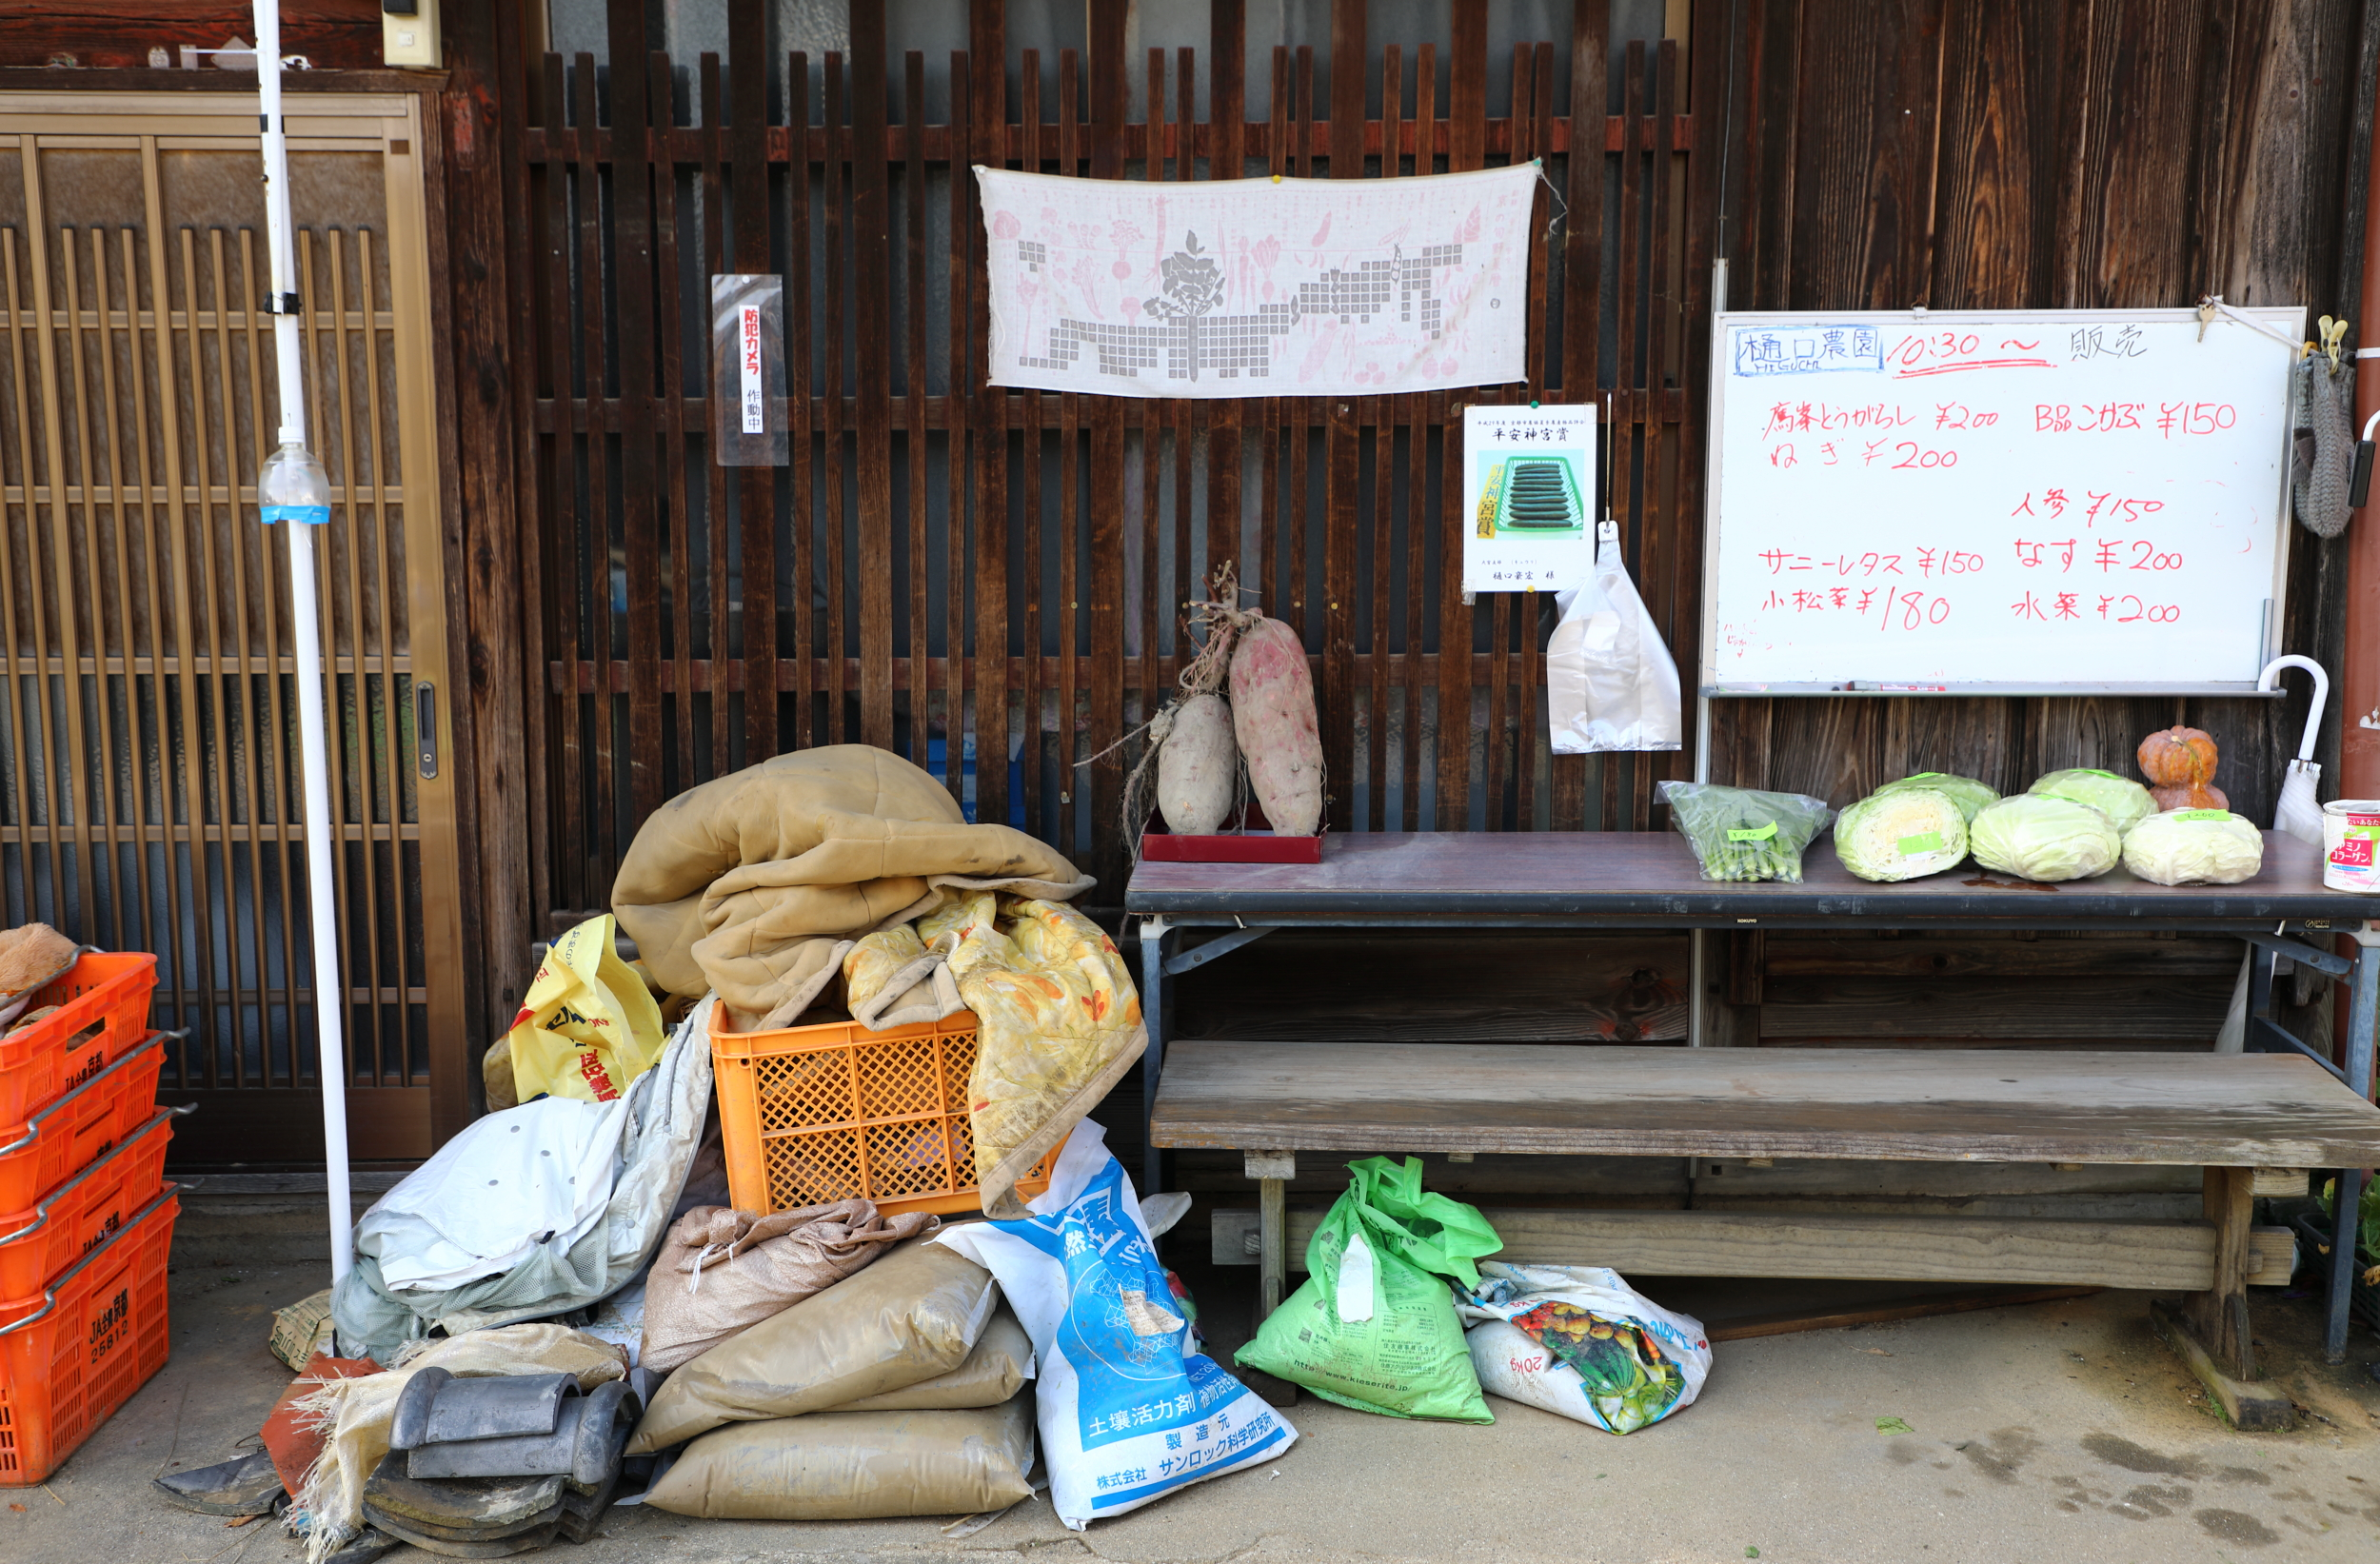 Vegetables for sale on benches in front of Higuchi Farm.